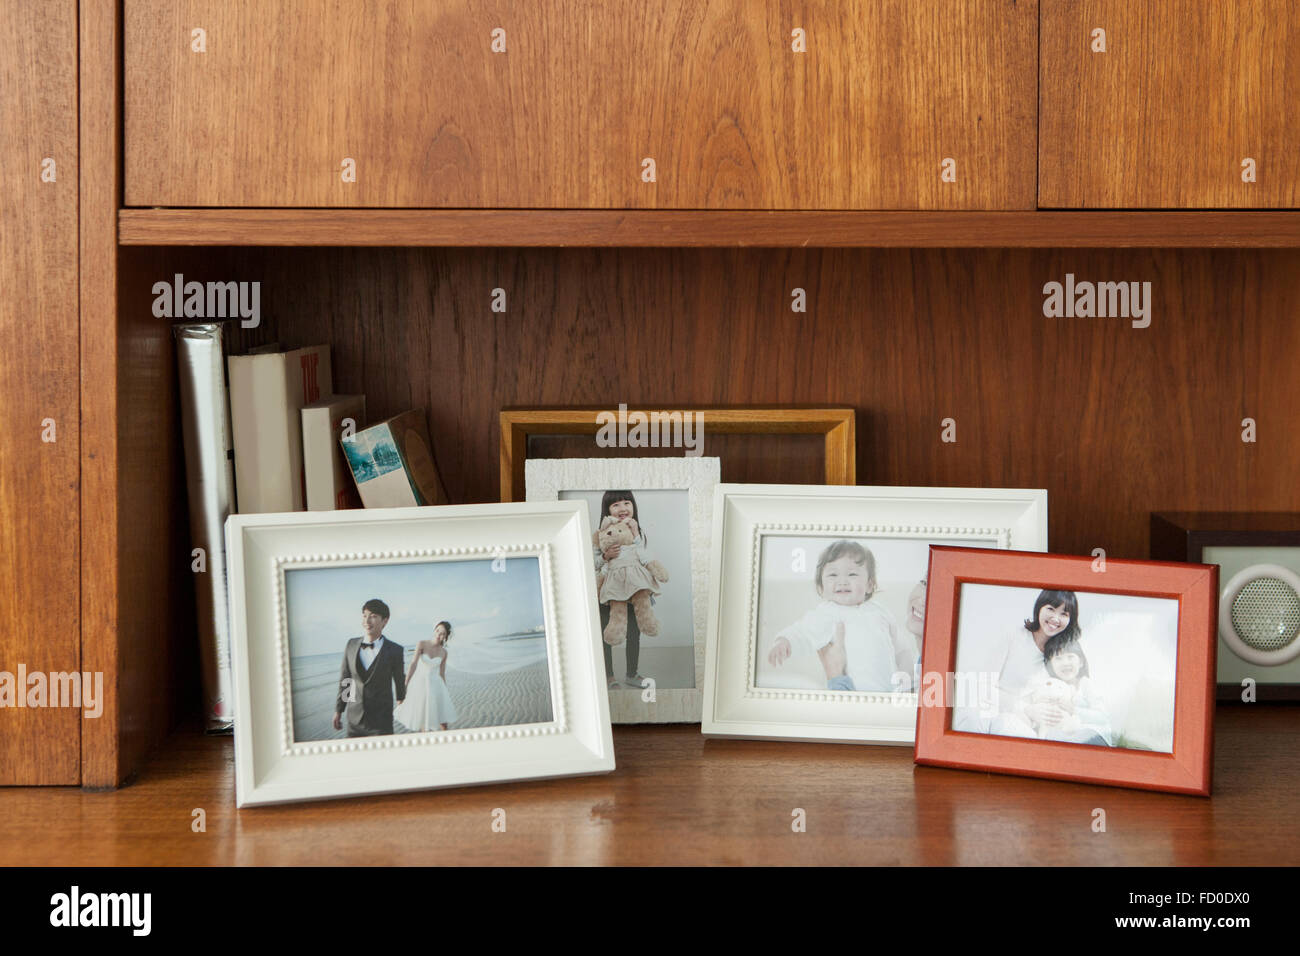 Family photos in frames placed together - Stock Image